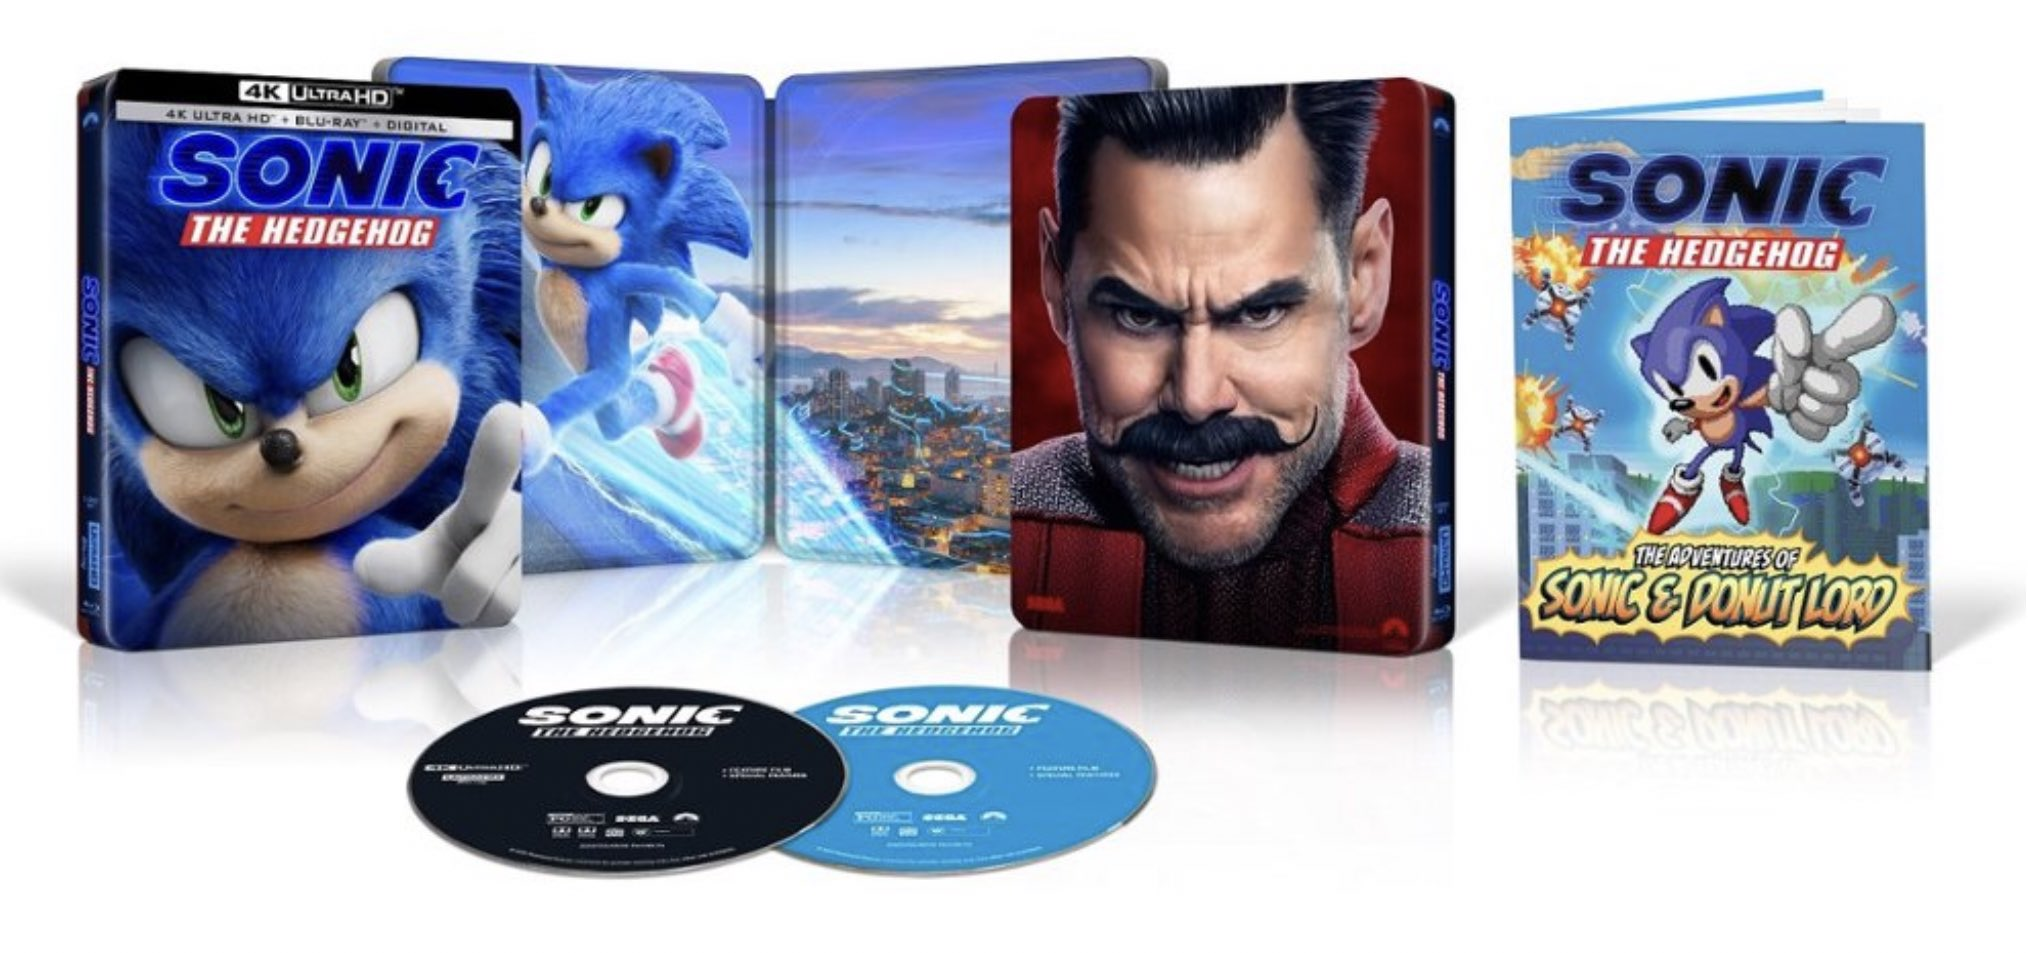 Sonic The Hedgehog Movie Gets Dvd And Blu Ray Release Date Reviews Interviews Articles Product Reviews And More